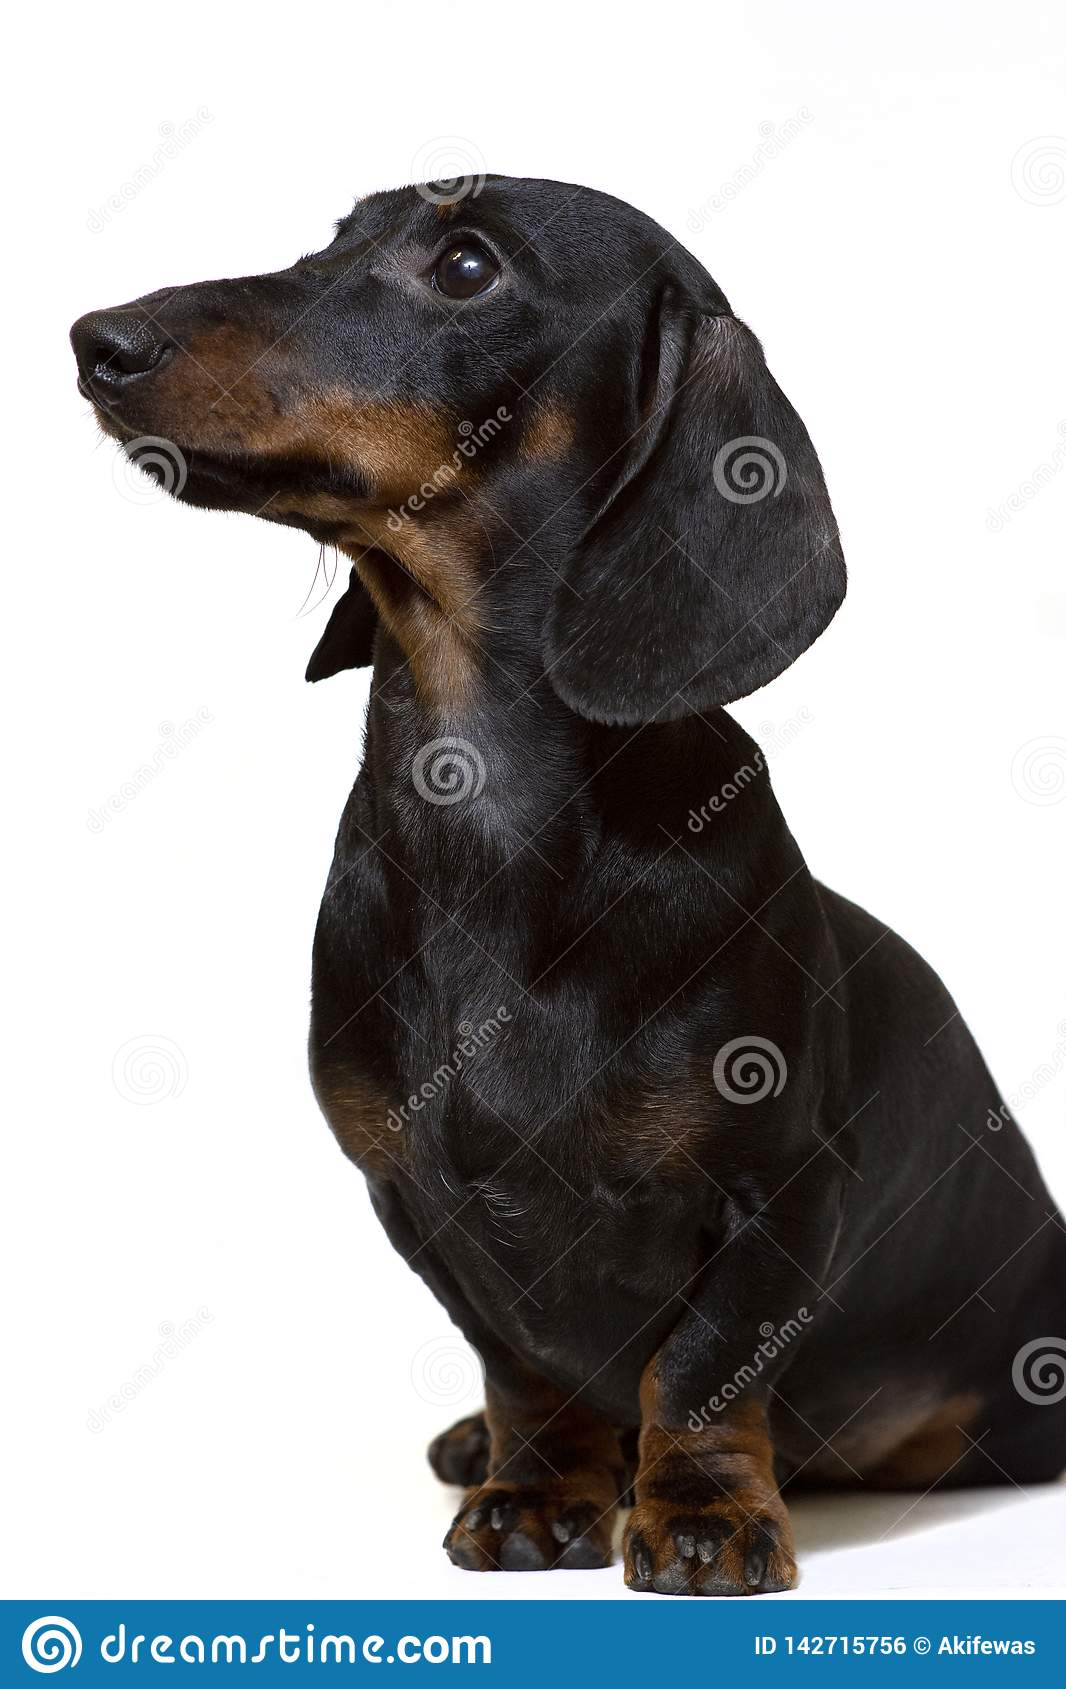 Dachshund black sits staring intently at the white